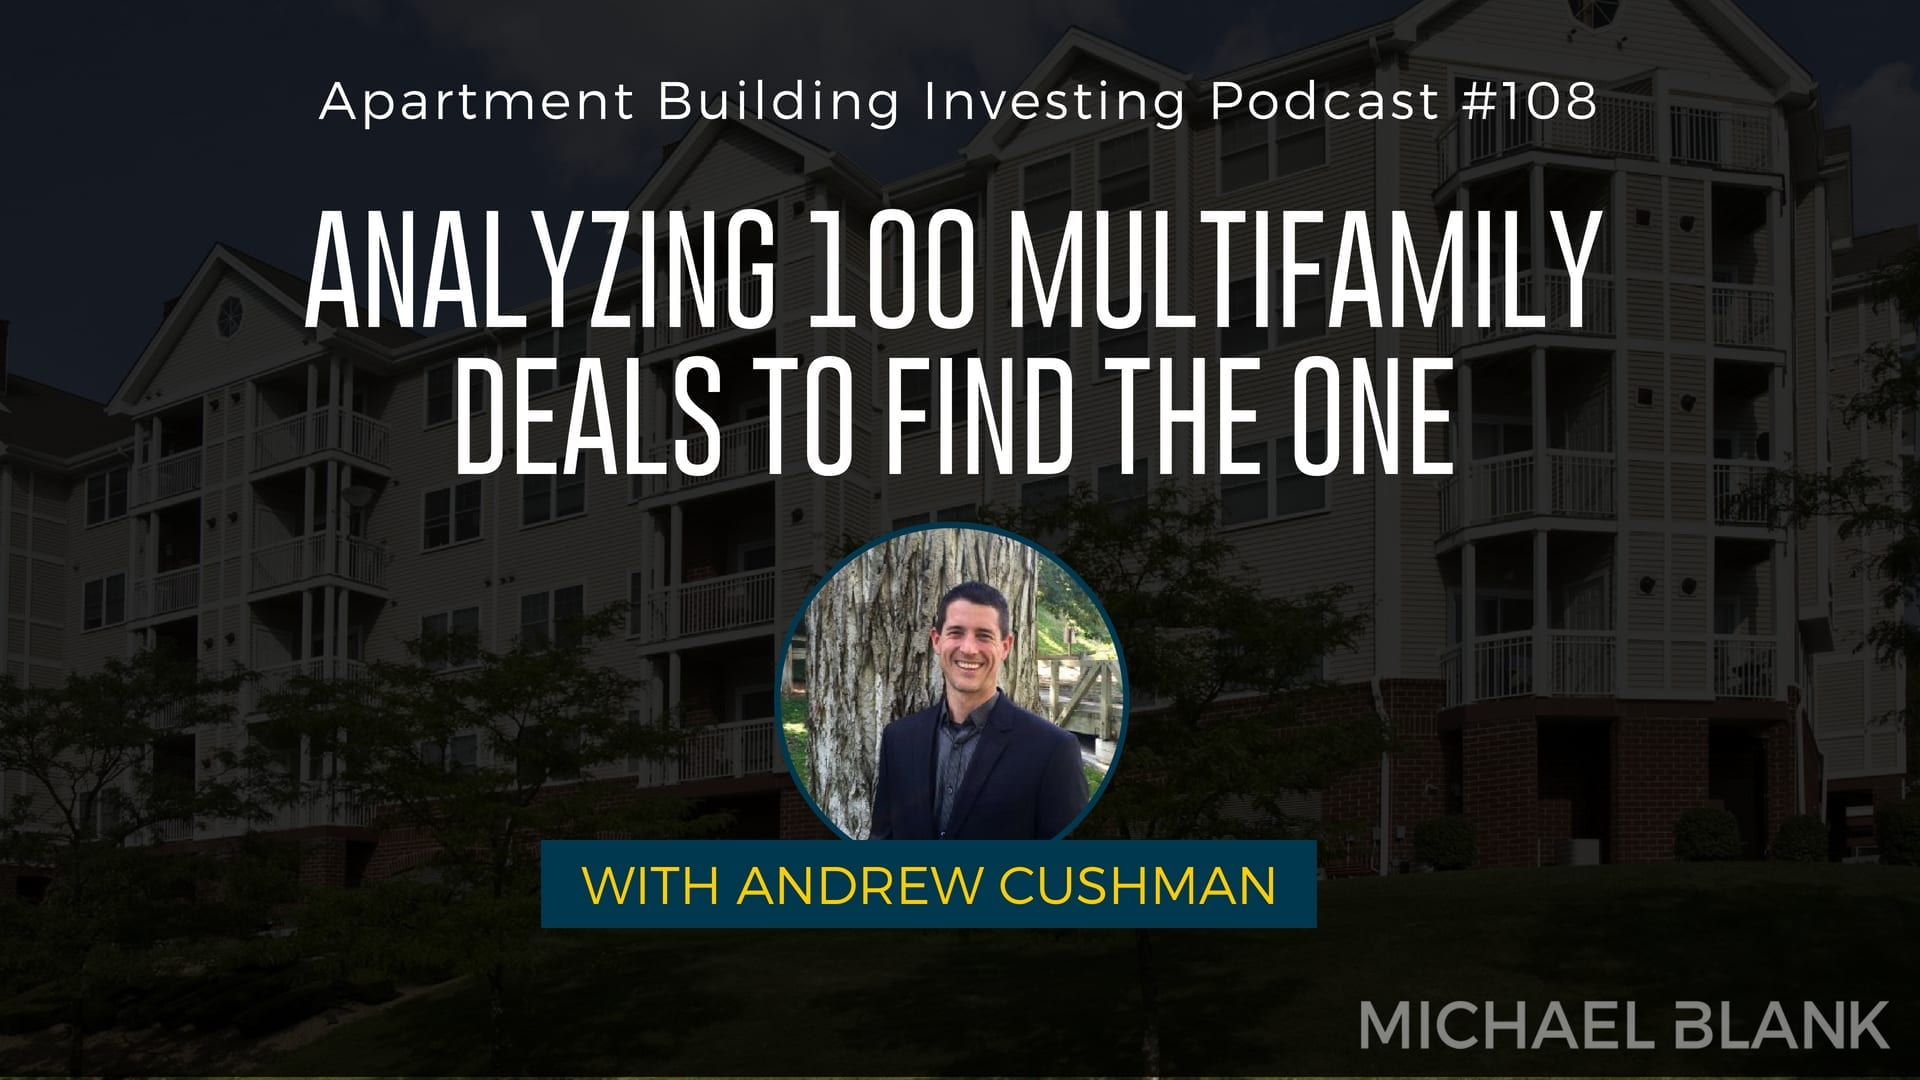 MB 108: Analyzing 100 Multifamily Deals to Find the ONE – With Andrew Cushman